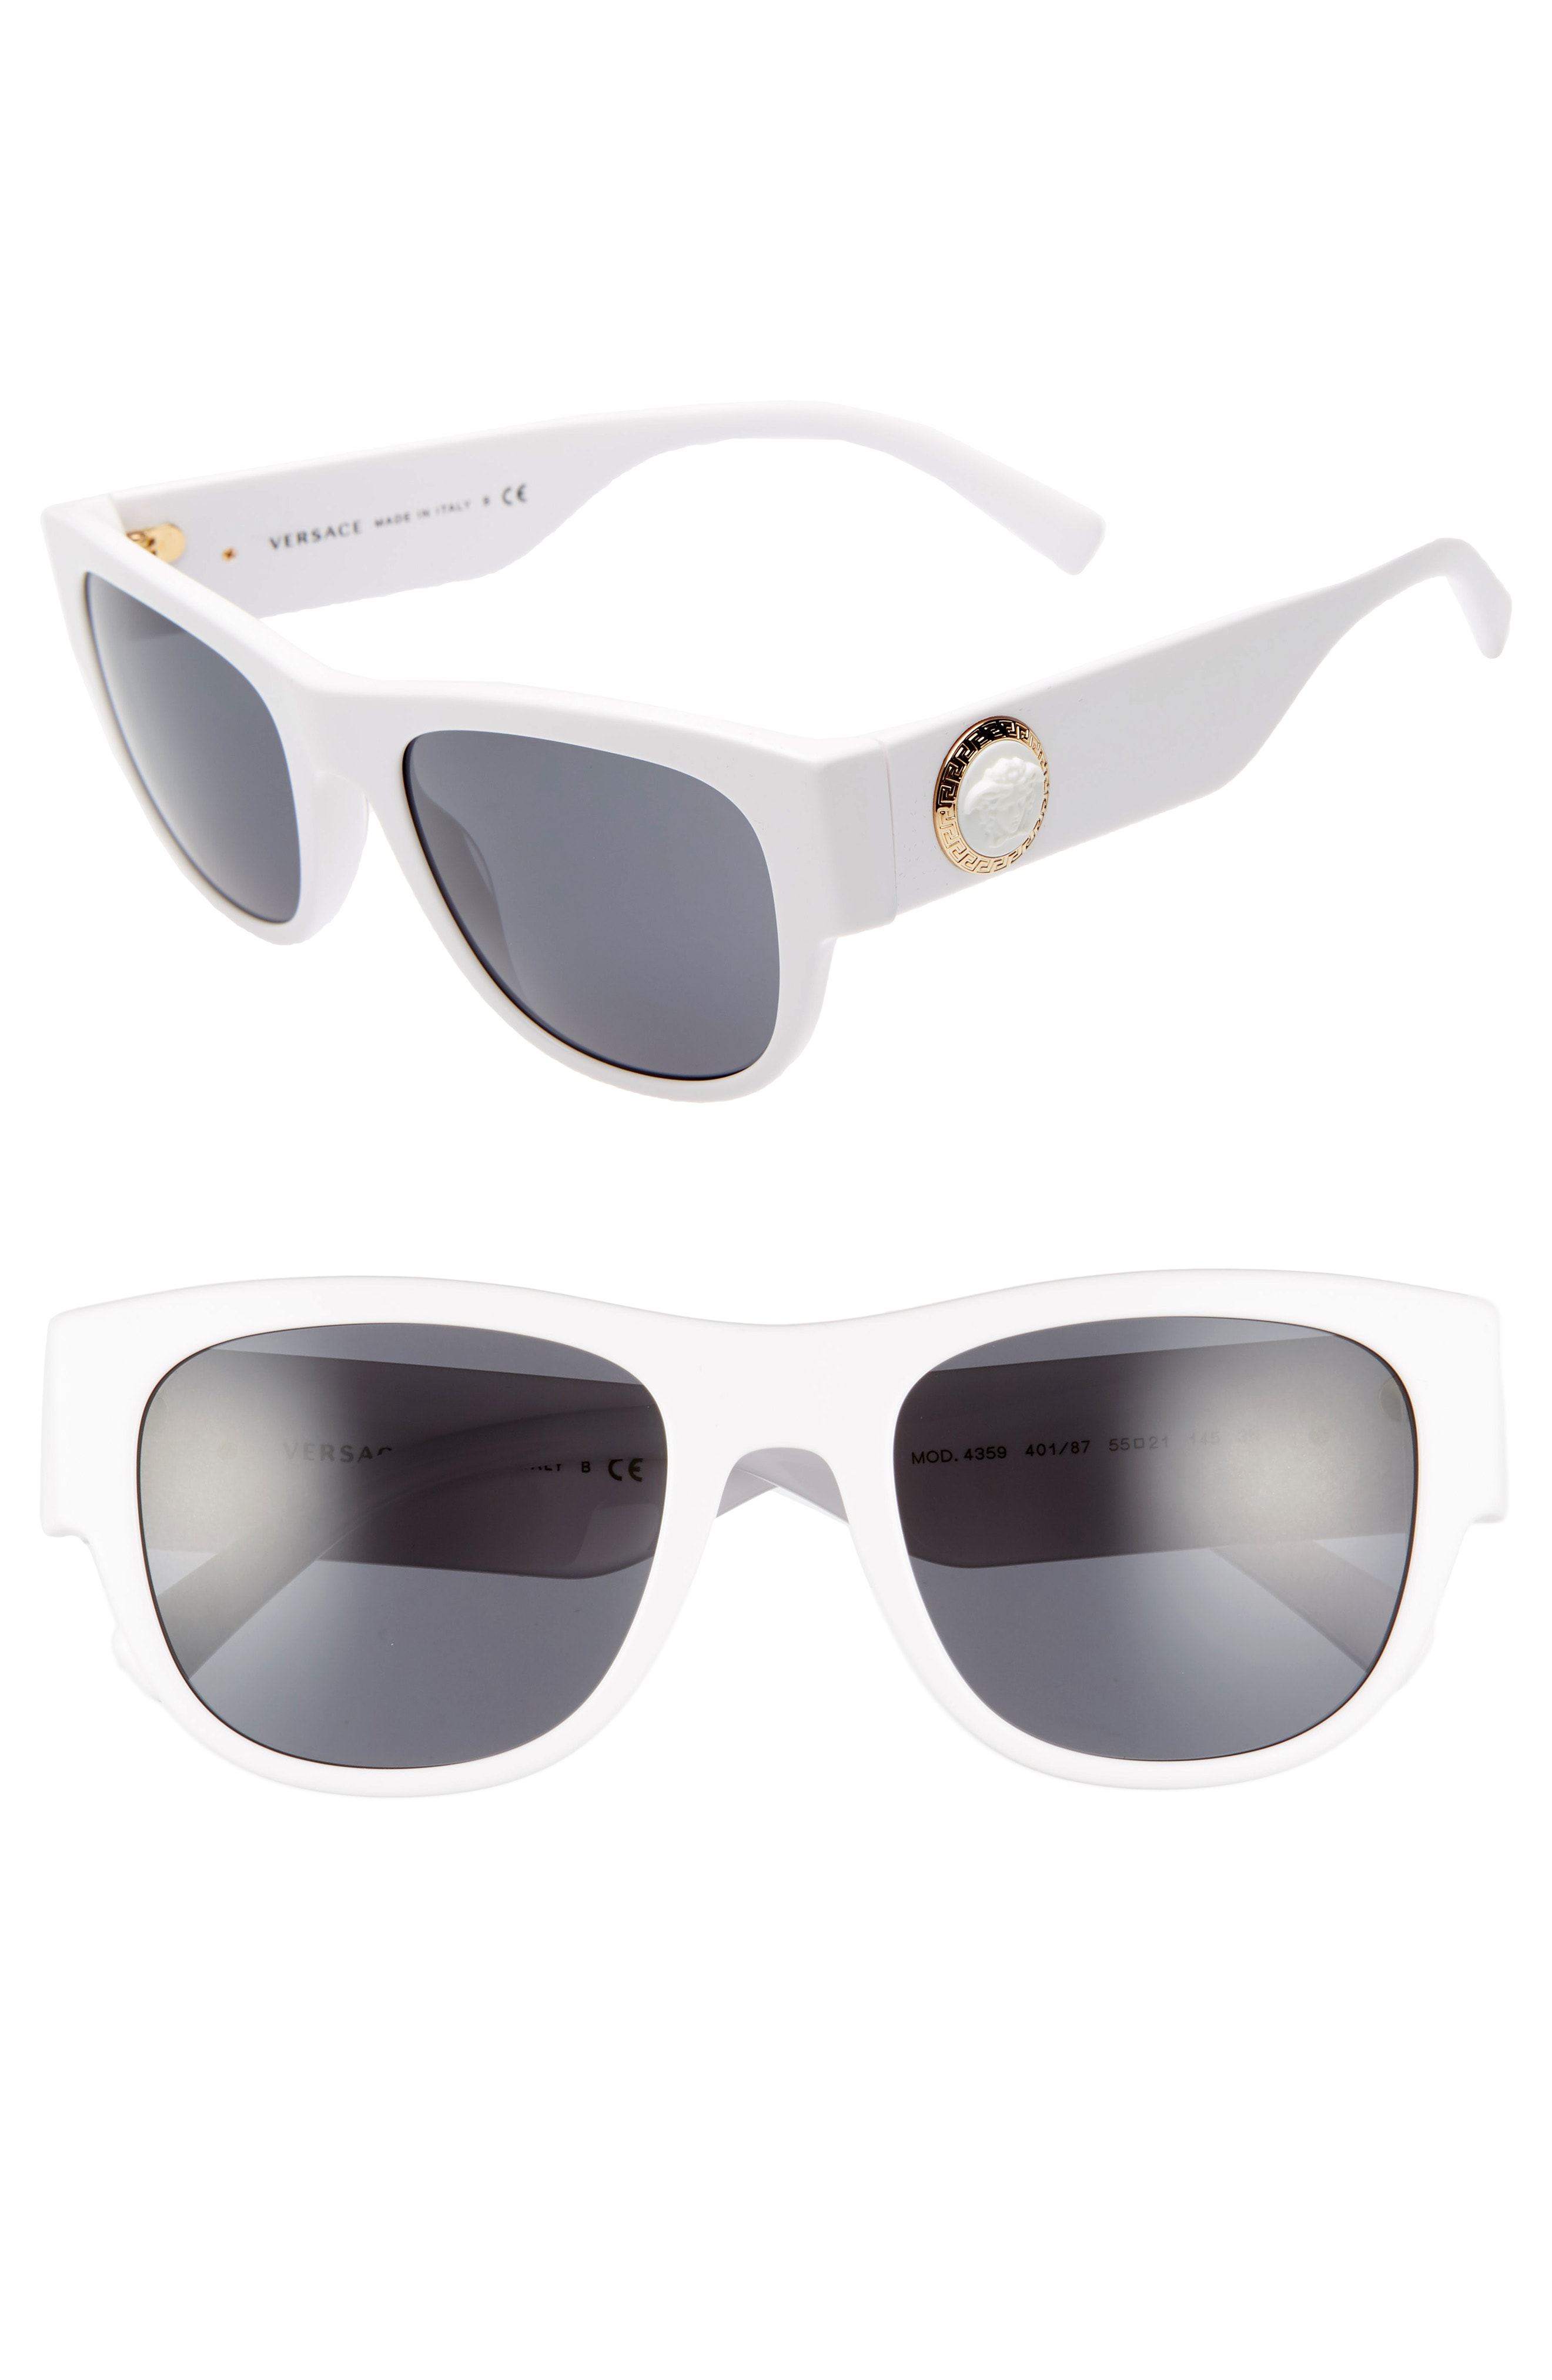 f61bbe2dd30b Versace 55Mm Square Sunglasses - White  Grey Solid In White Frames Grey  Lenses